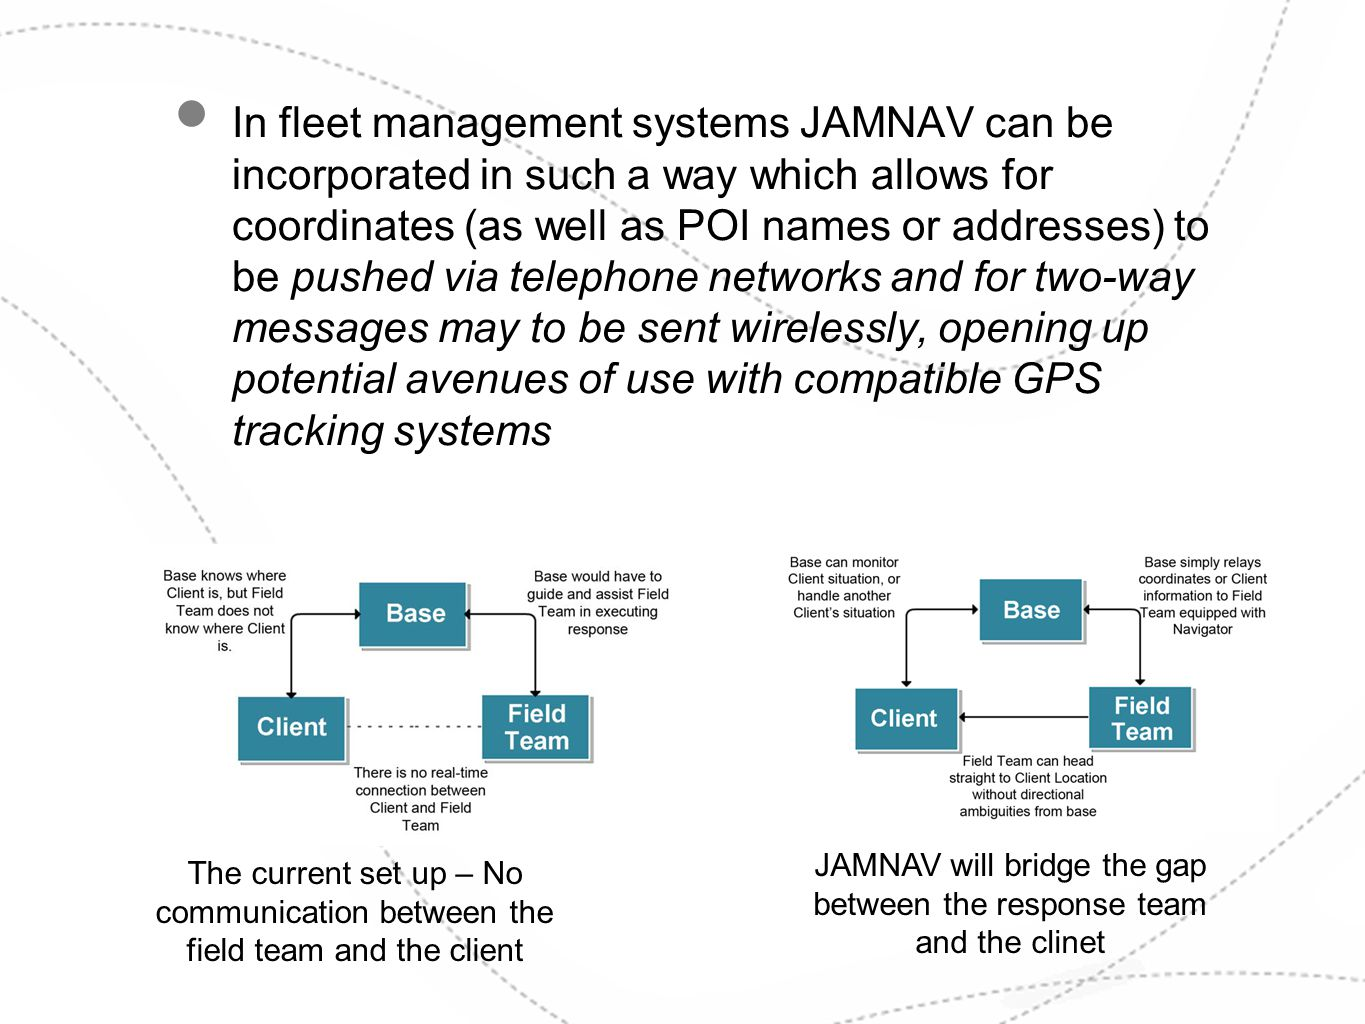 In fleet management systems JAMNAV can be incorporated in such a way which allows for coordinates (as well as POI names or addresses) to be pushed via